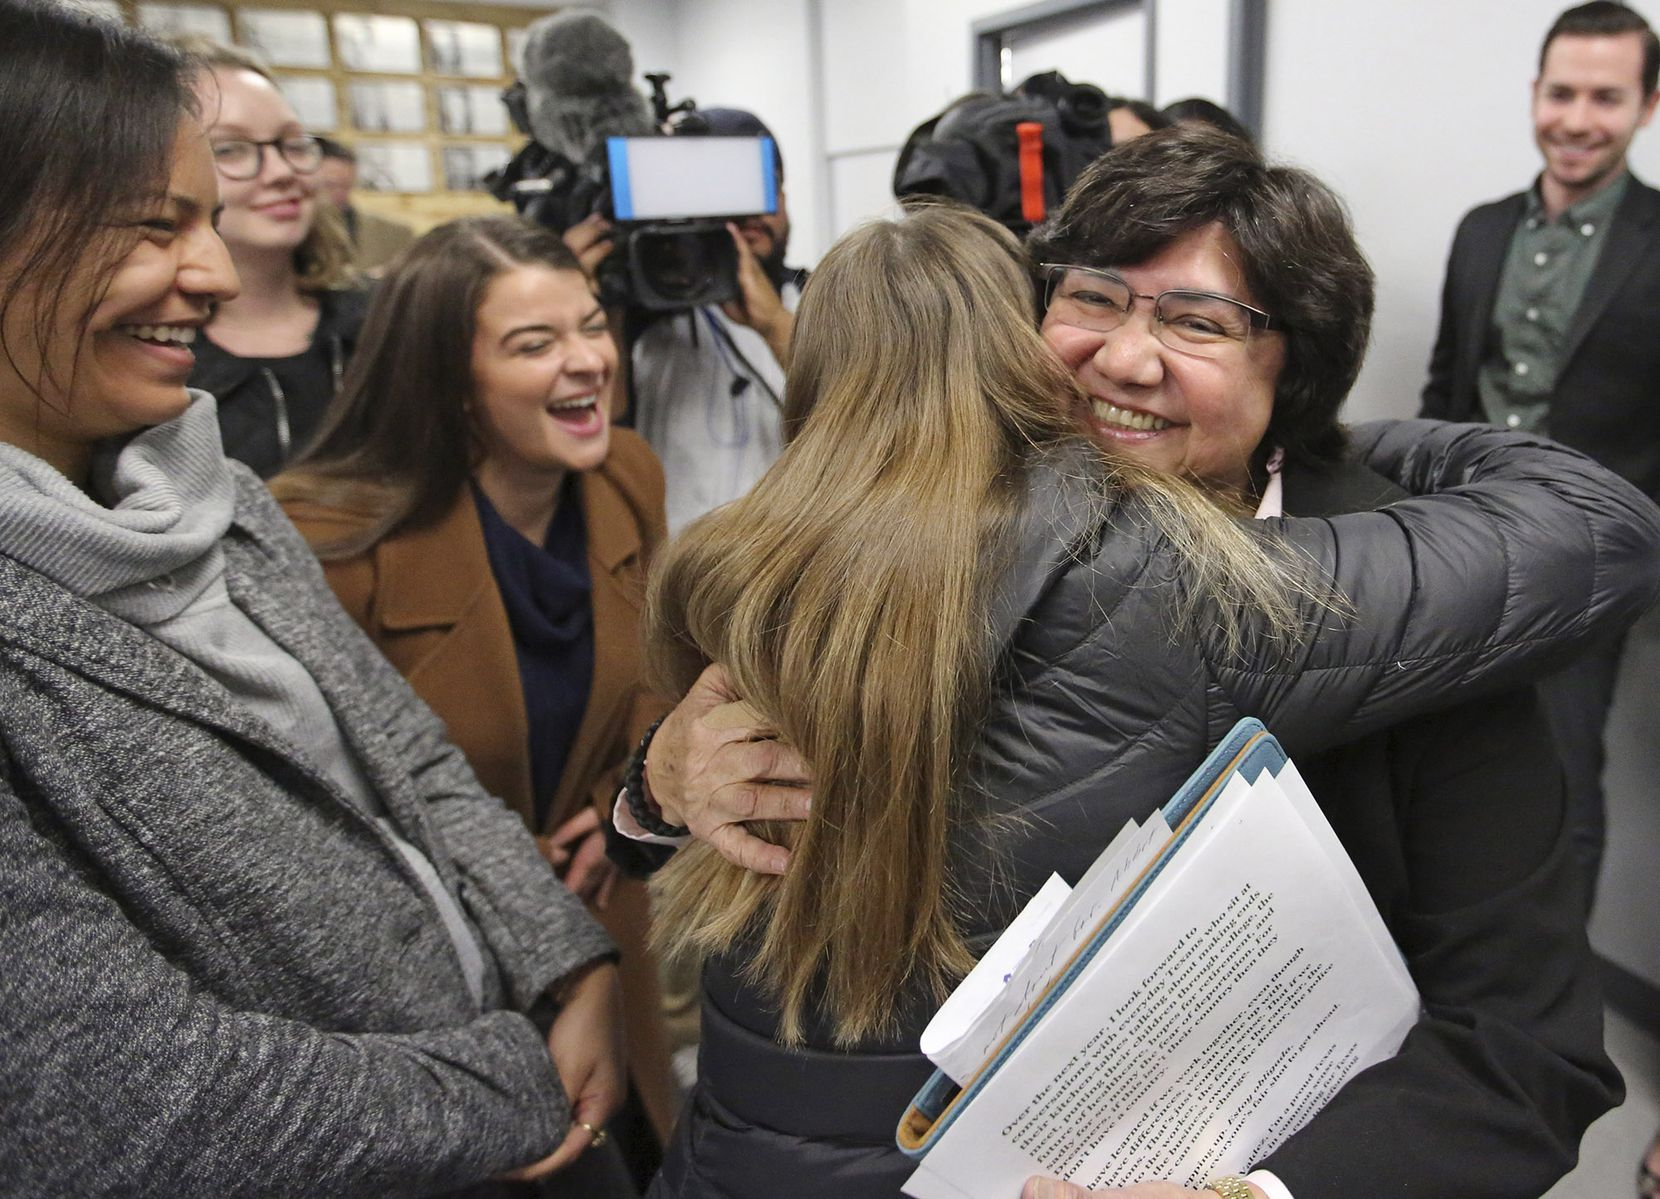 Lupe Valdez is hugged by well-wishers after her announcement that she will seek the Democratic nomination for Texas governor at a news conference in Austin.